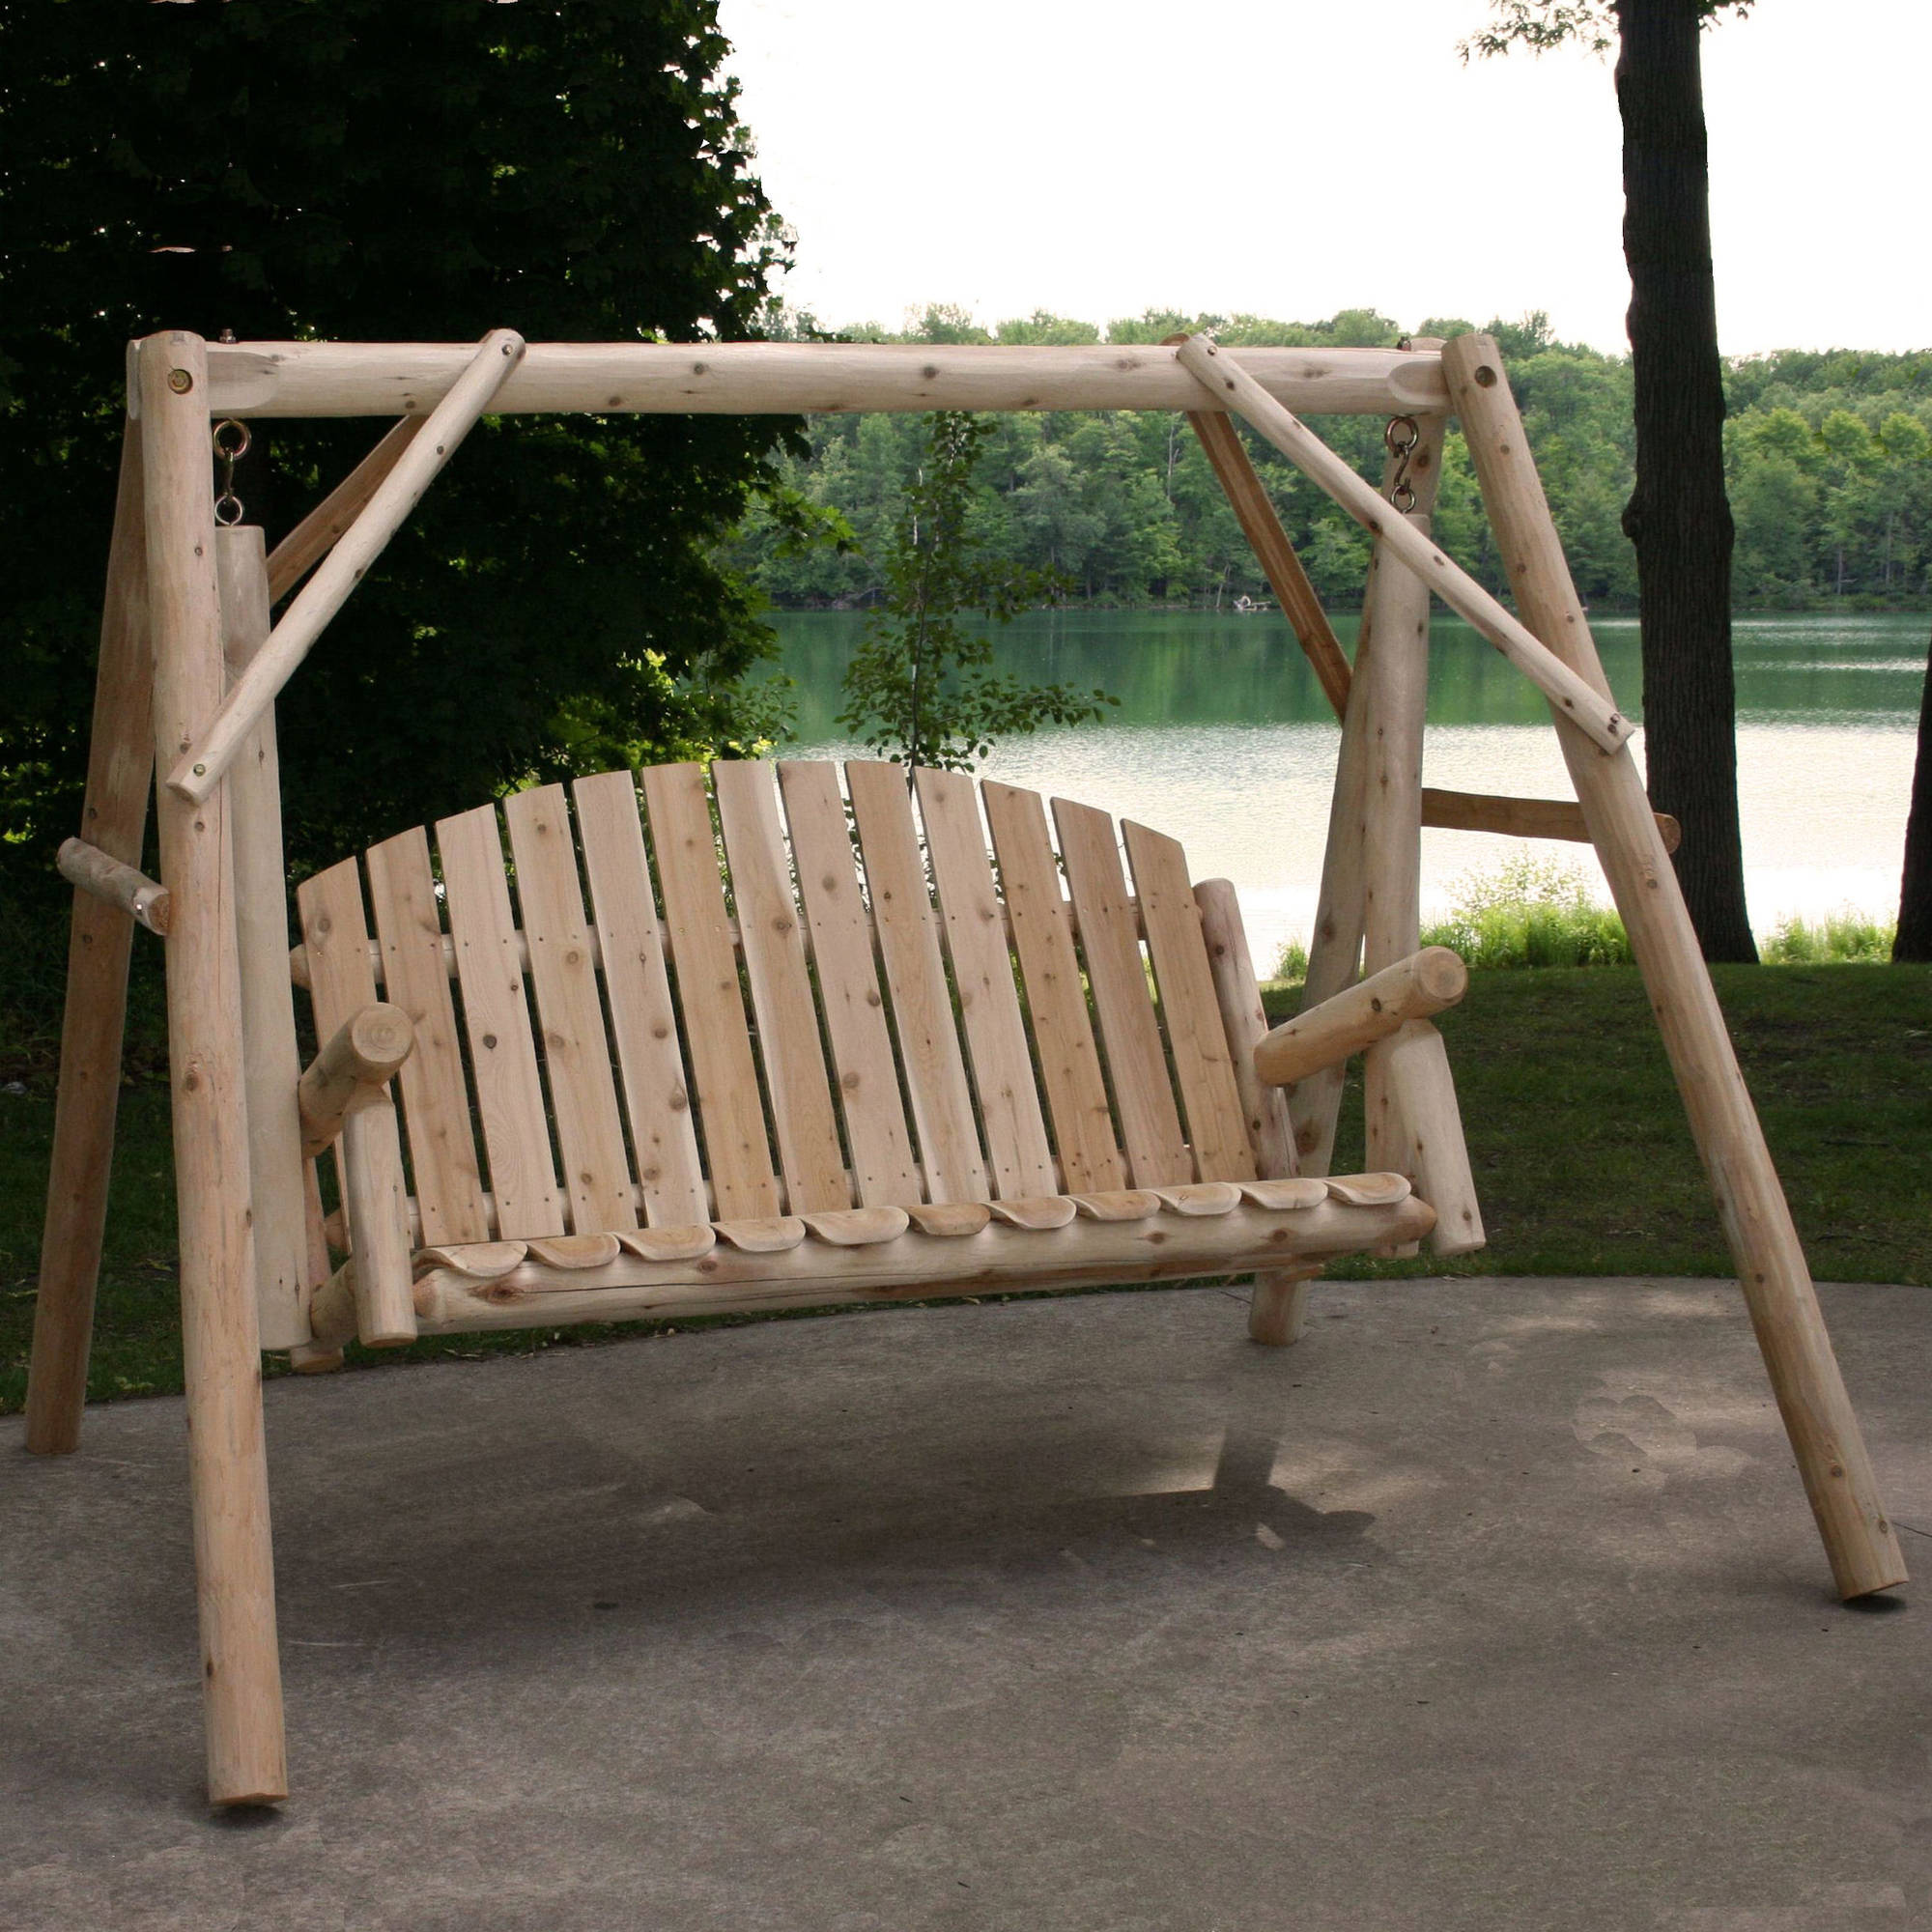 Lakeland Mills Country Garden Porch Swing with Stand by Porch Swings